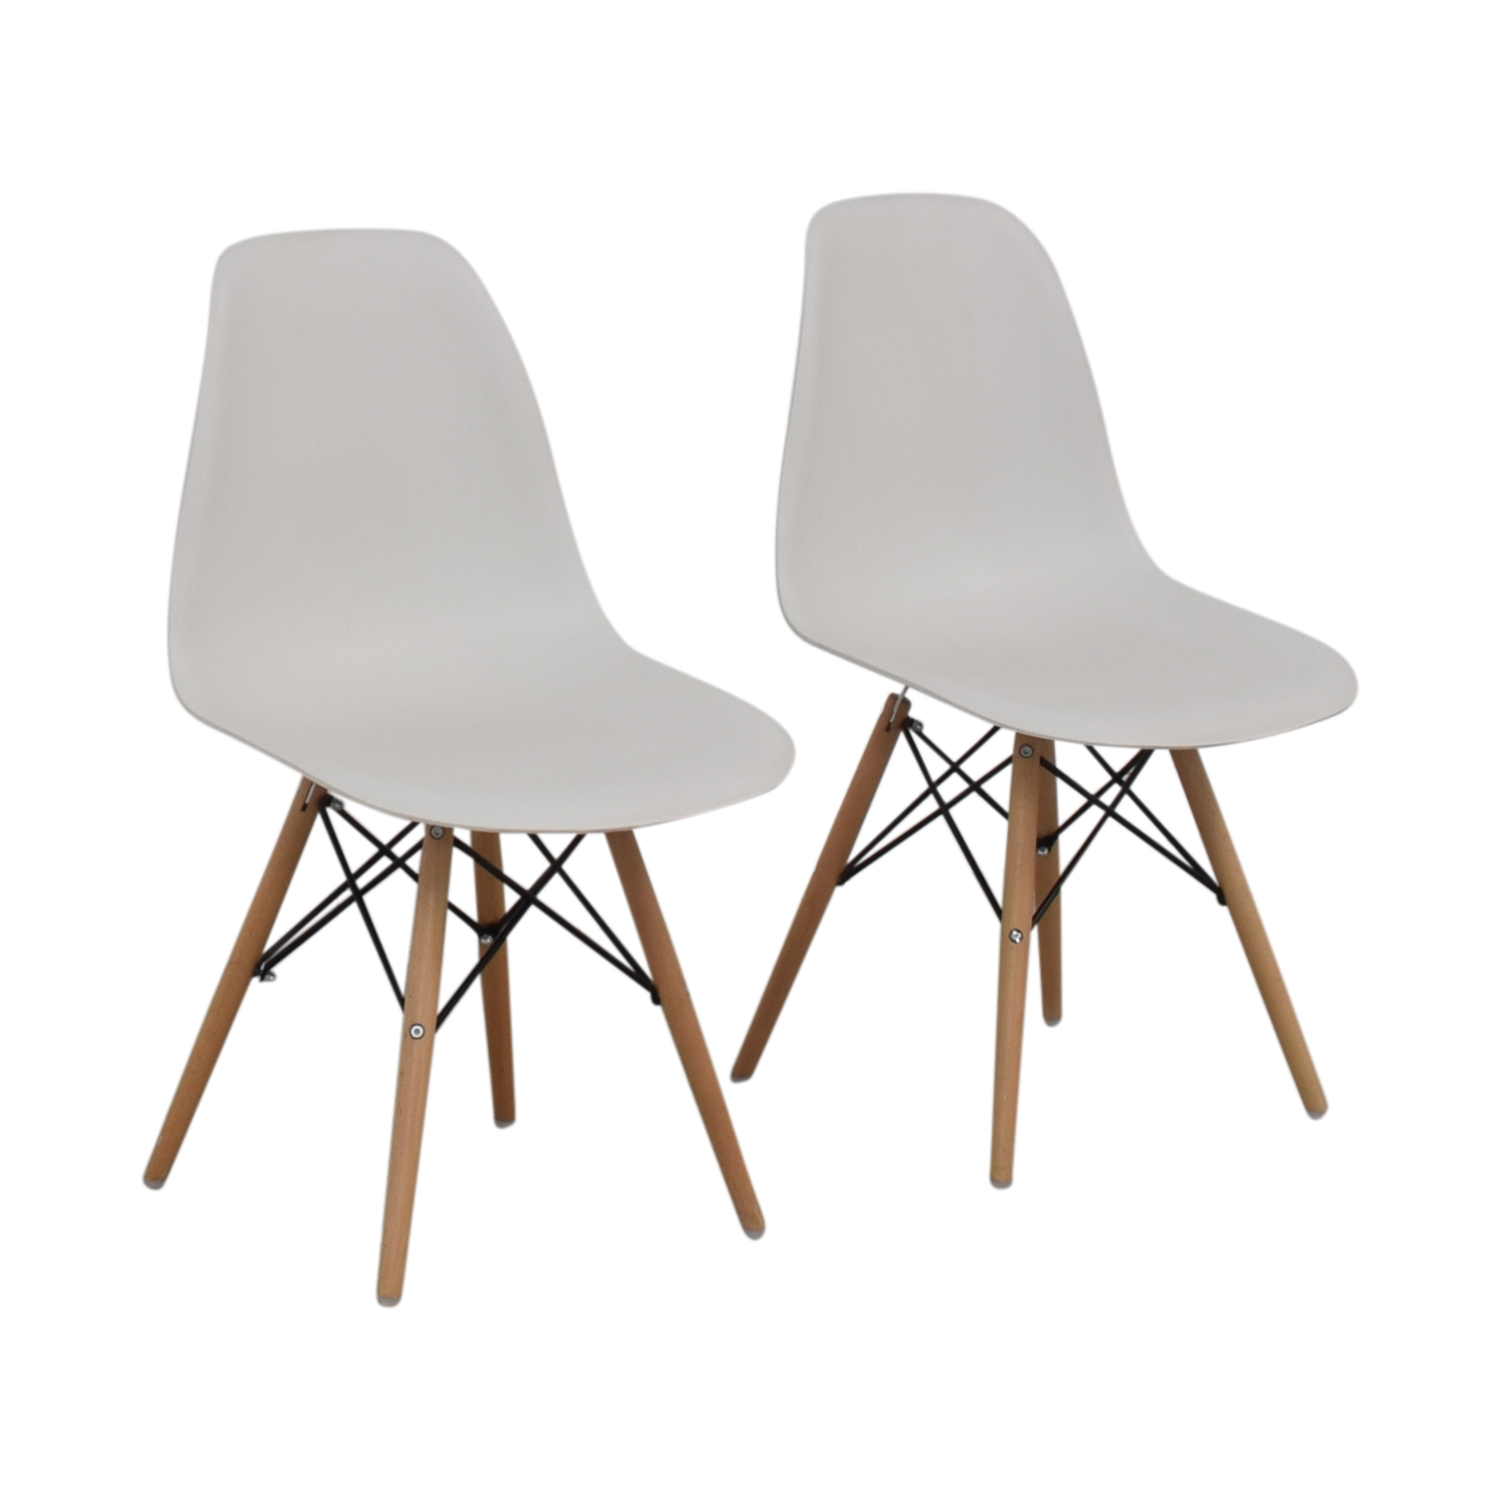 Wayfair Wayfair Eames Replica White Dining Chairs Dining Chairs